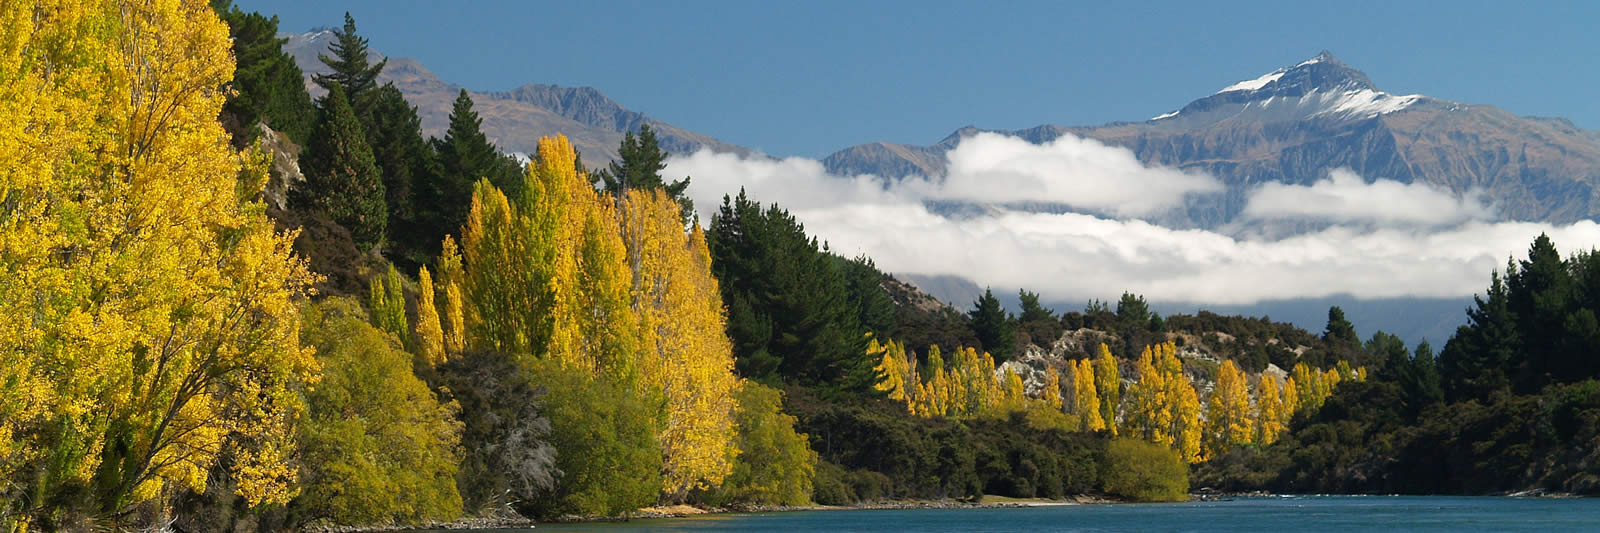 Outlet Track views on Eco Wanaka Guided Walks